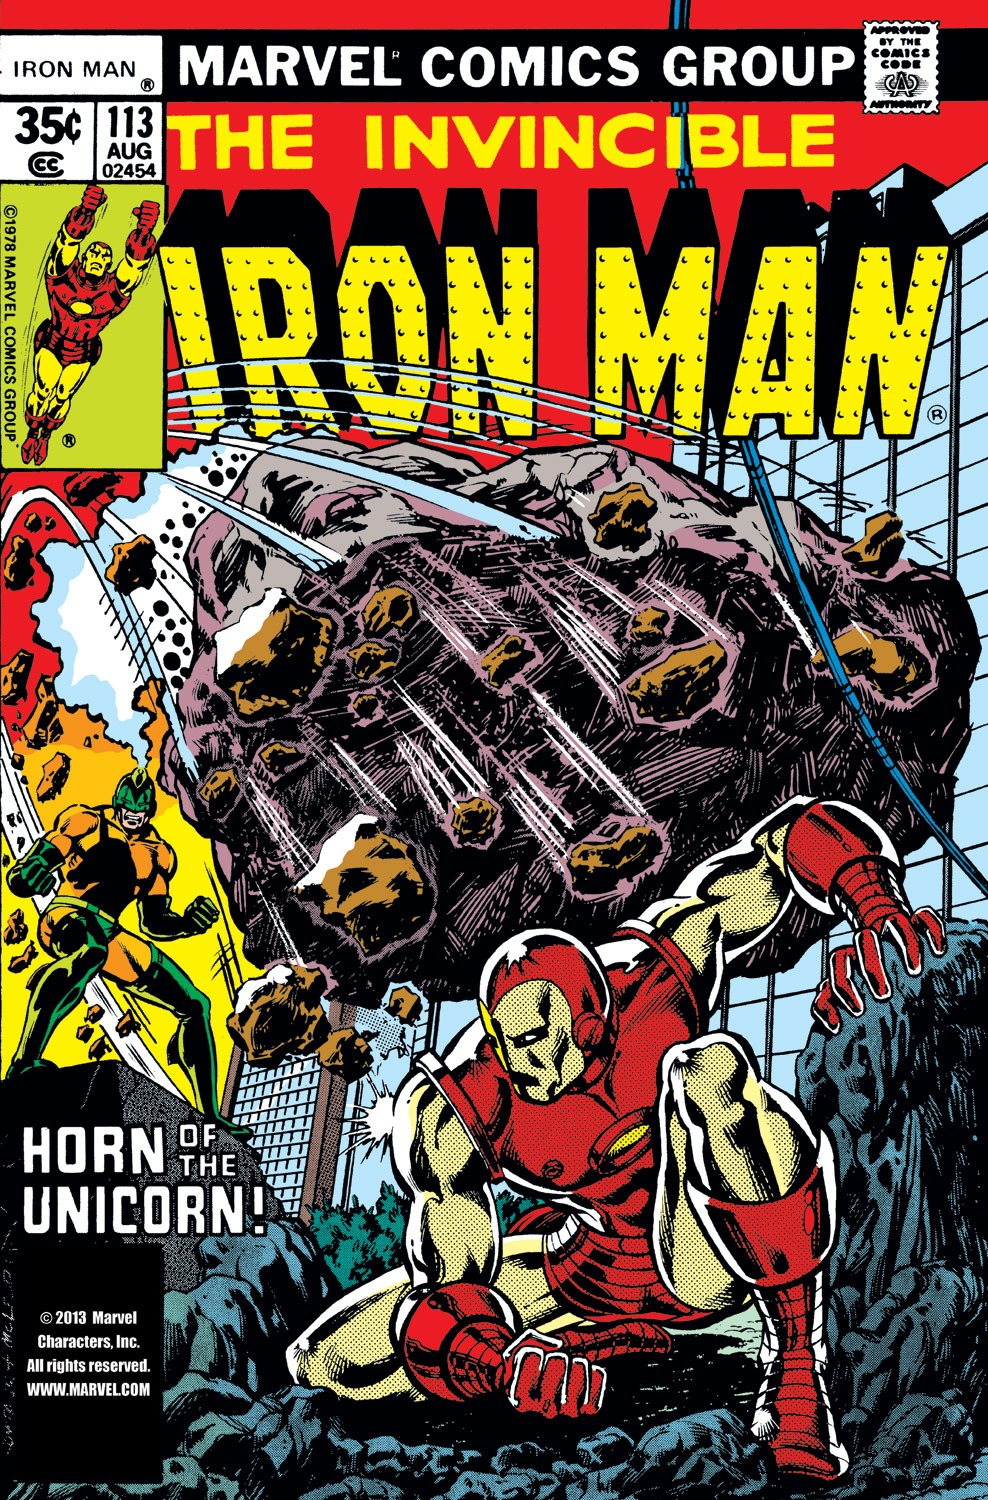 Iron Man (1968) #113, cover penciled by John Romita Jr. & inked by Bob McLeod.